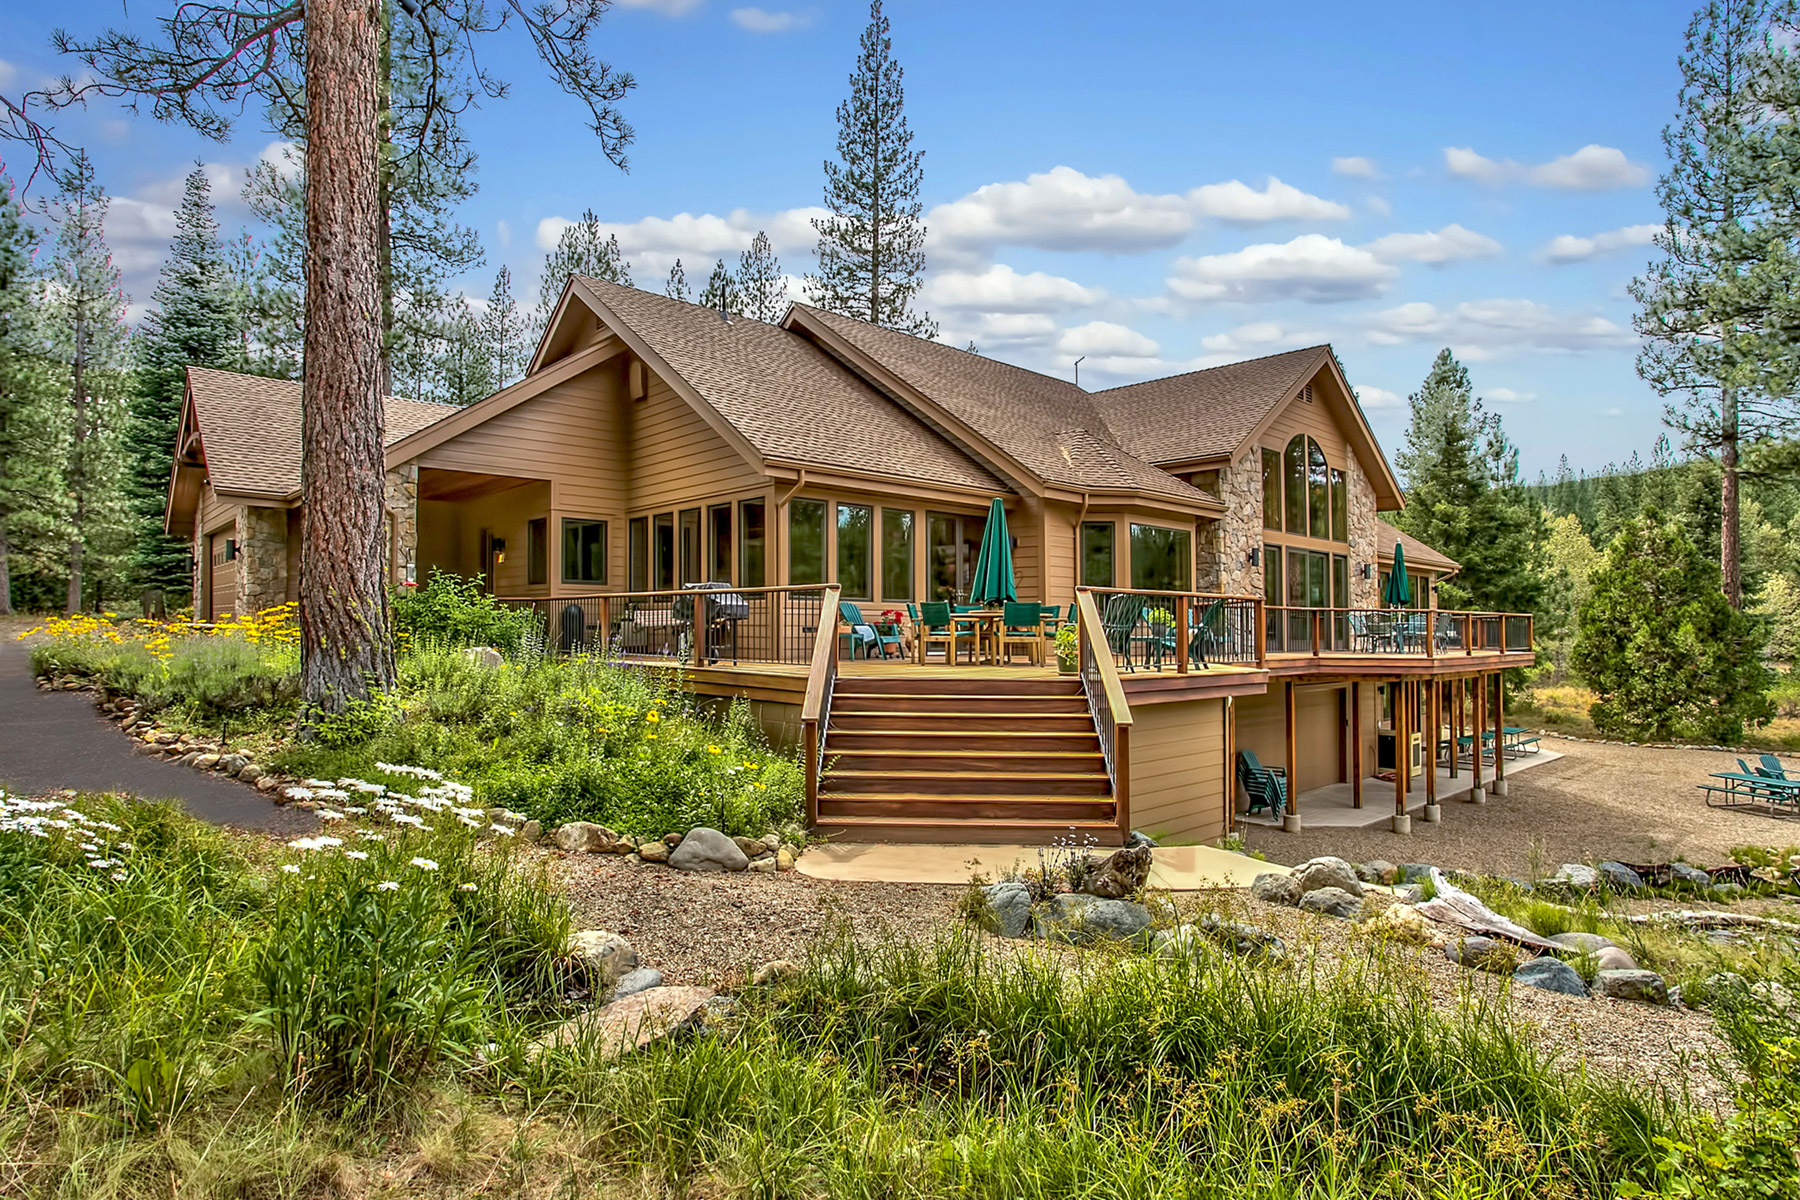 Single Family Home for Active at 1180 Smith Creek Road Graeagle, California 96103 United States